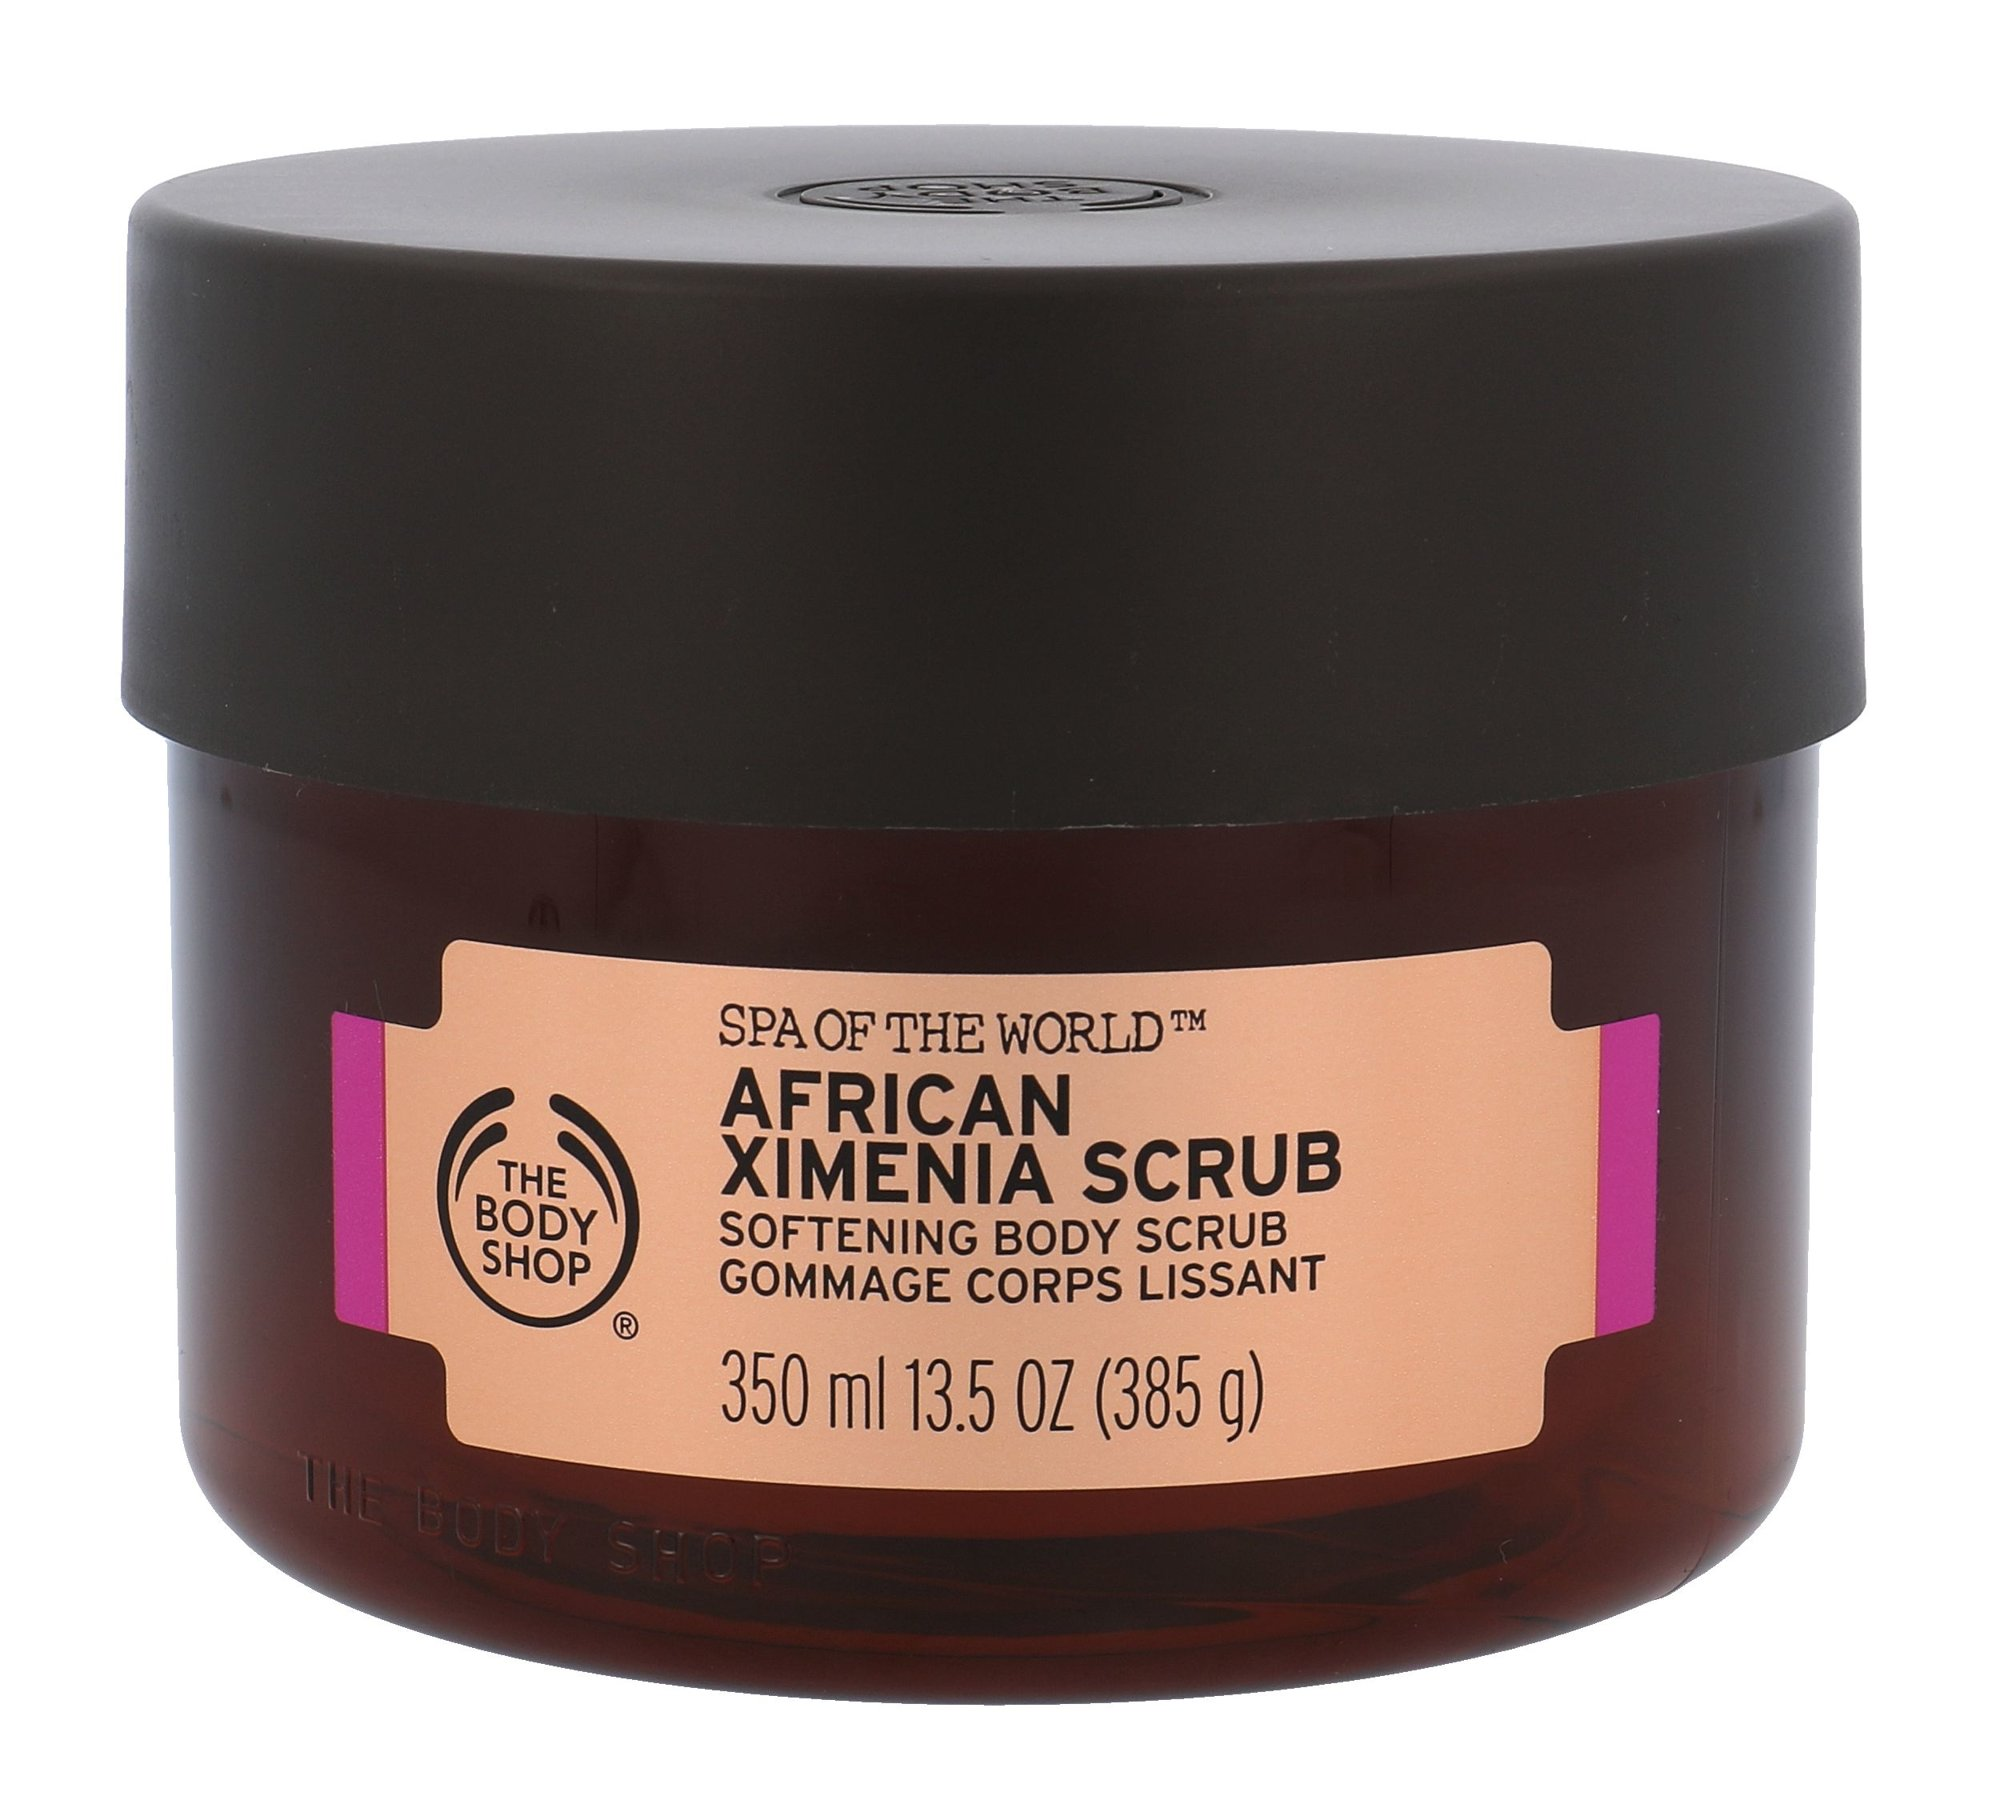 The Body Shop Spa Of The World Cosmetic 350ml  African Ximenia